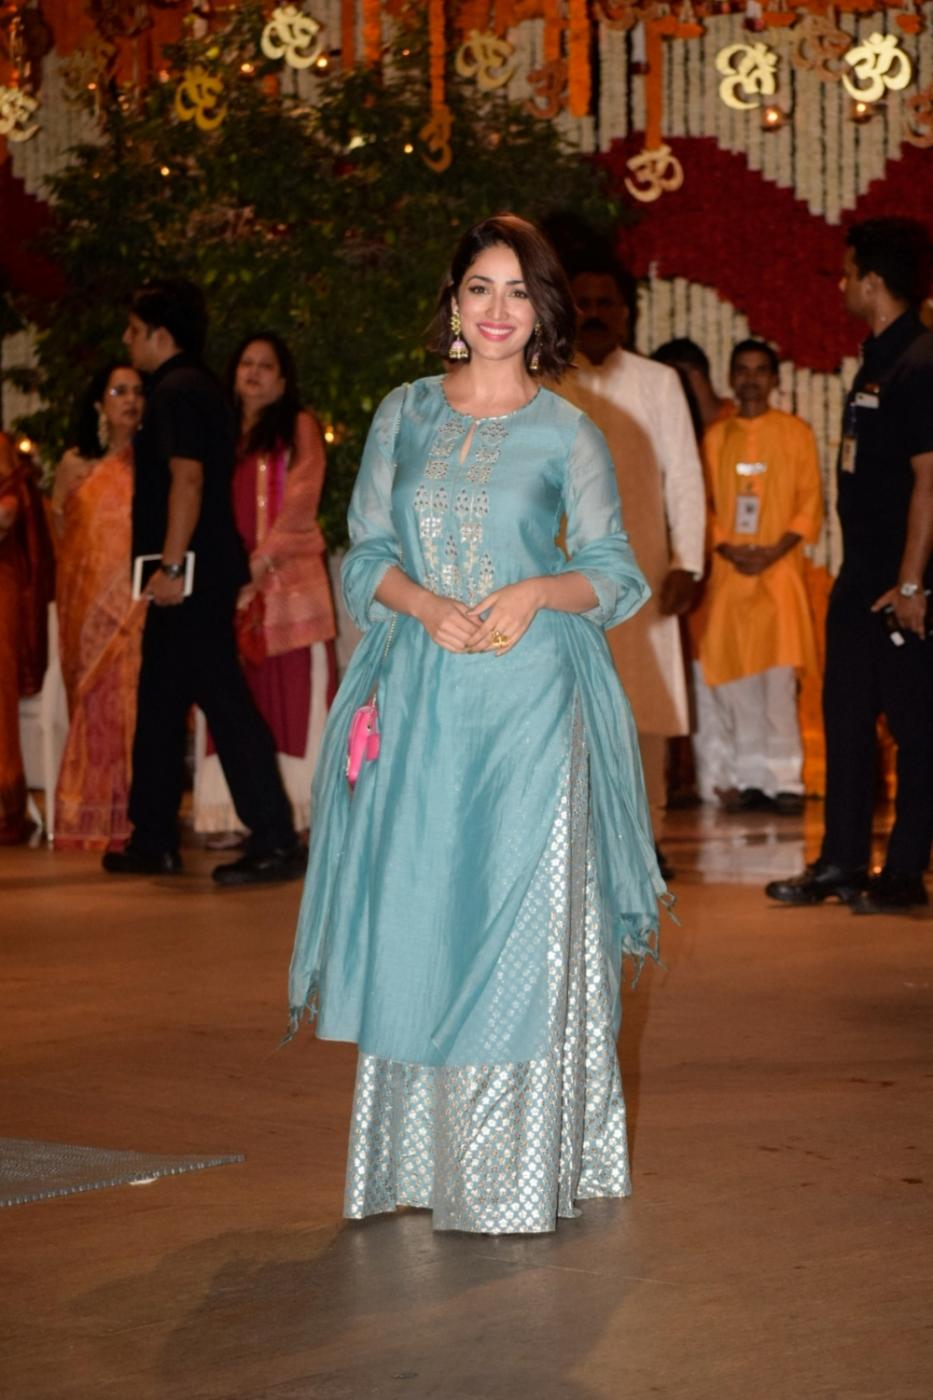 Mumbai: Actress Yami Gautam arrives at Reliance Industries Chairman and MD Mukesh Ambani's residence to celebrate Ganesh Chaturthi in Mumbai on Sept 13, 2018. (Photo: IANS) by .